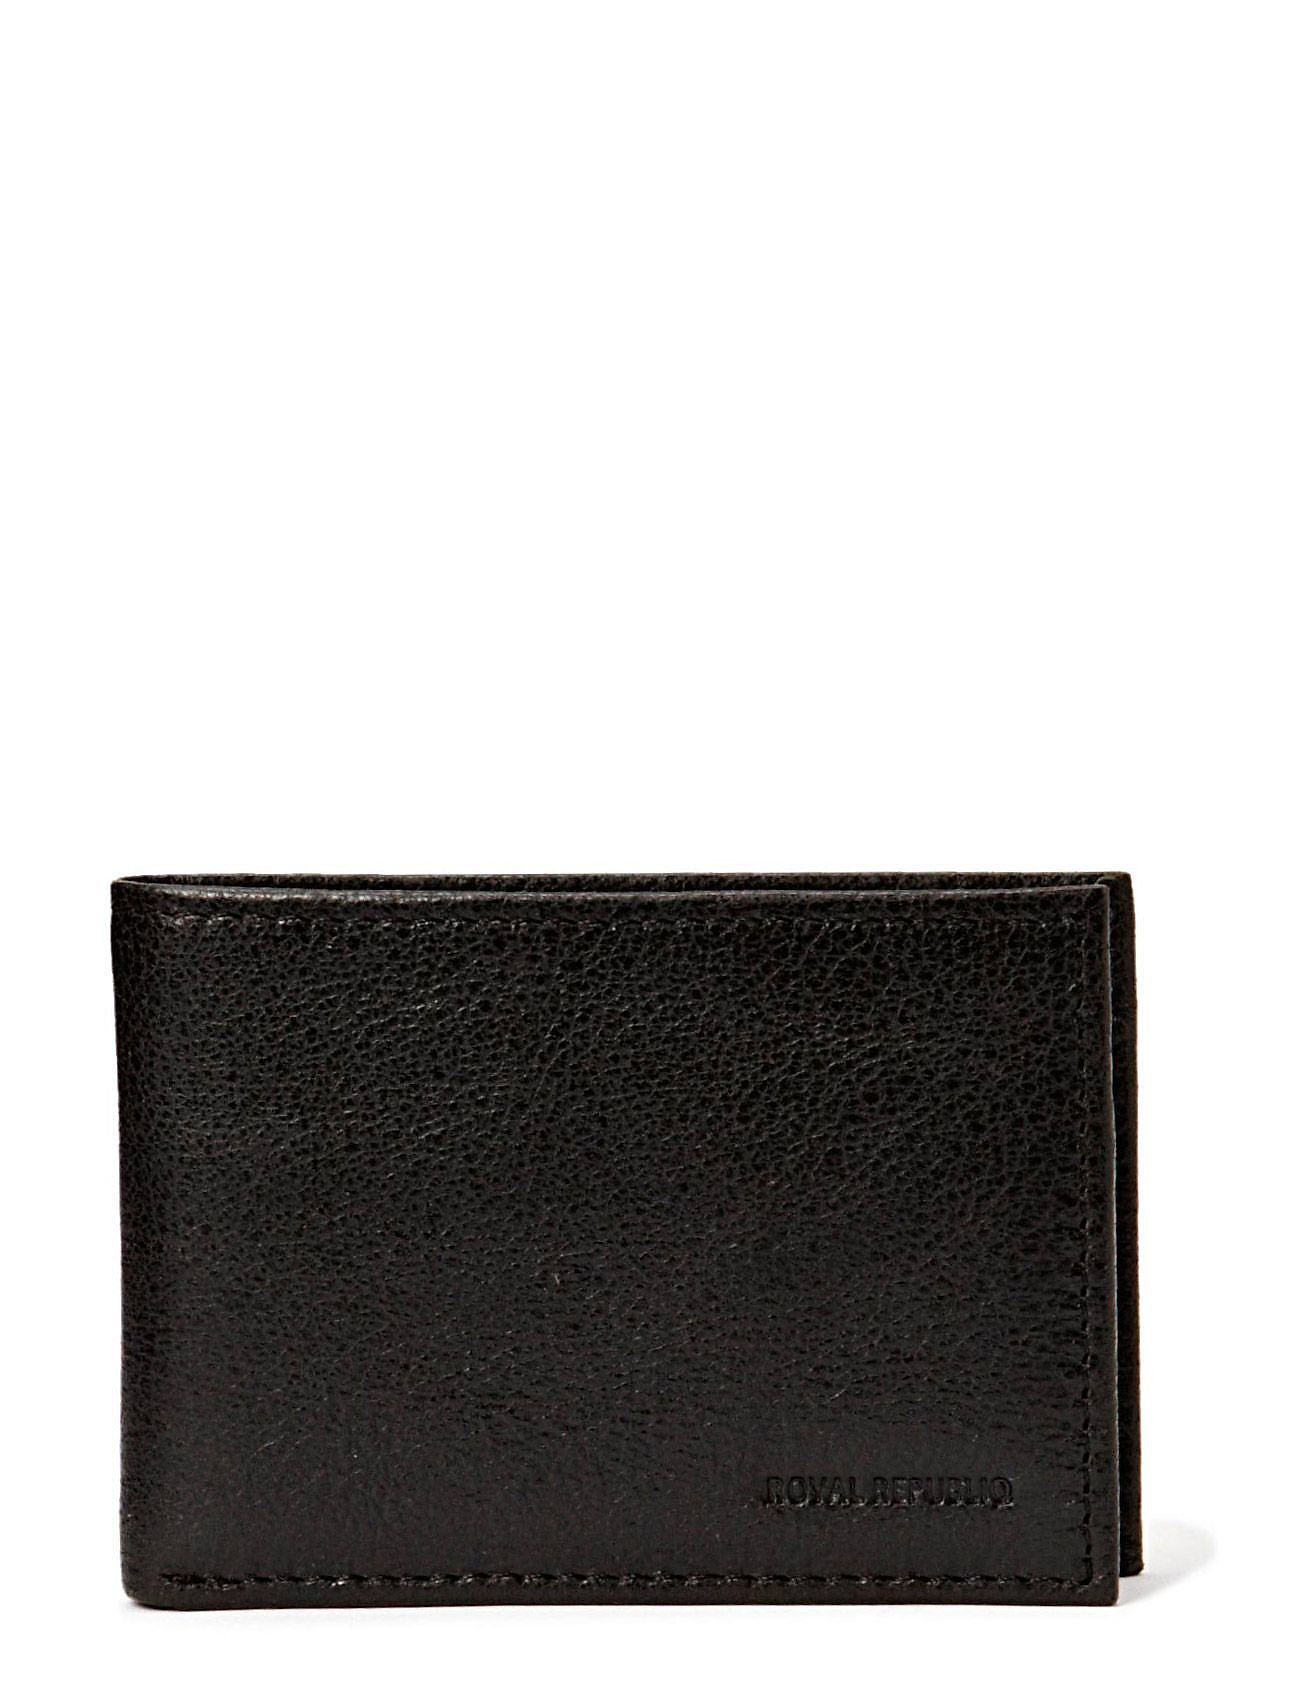 Royal RepubliQ Nano wallet BLK - BLACK